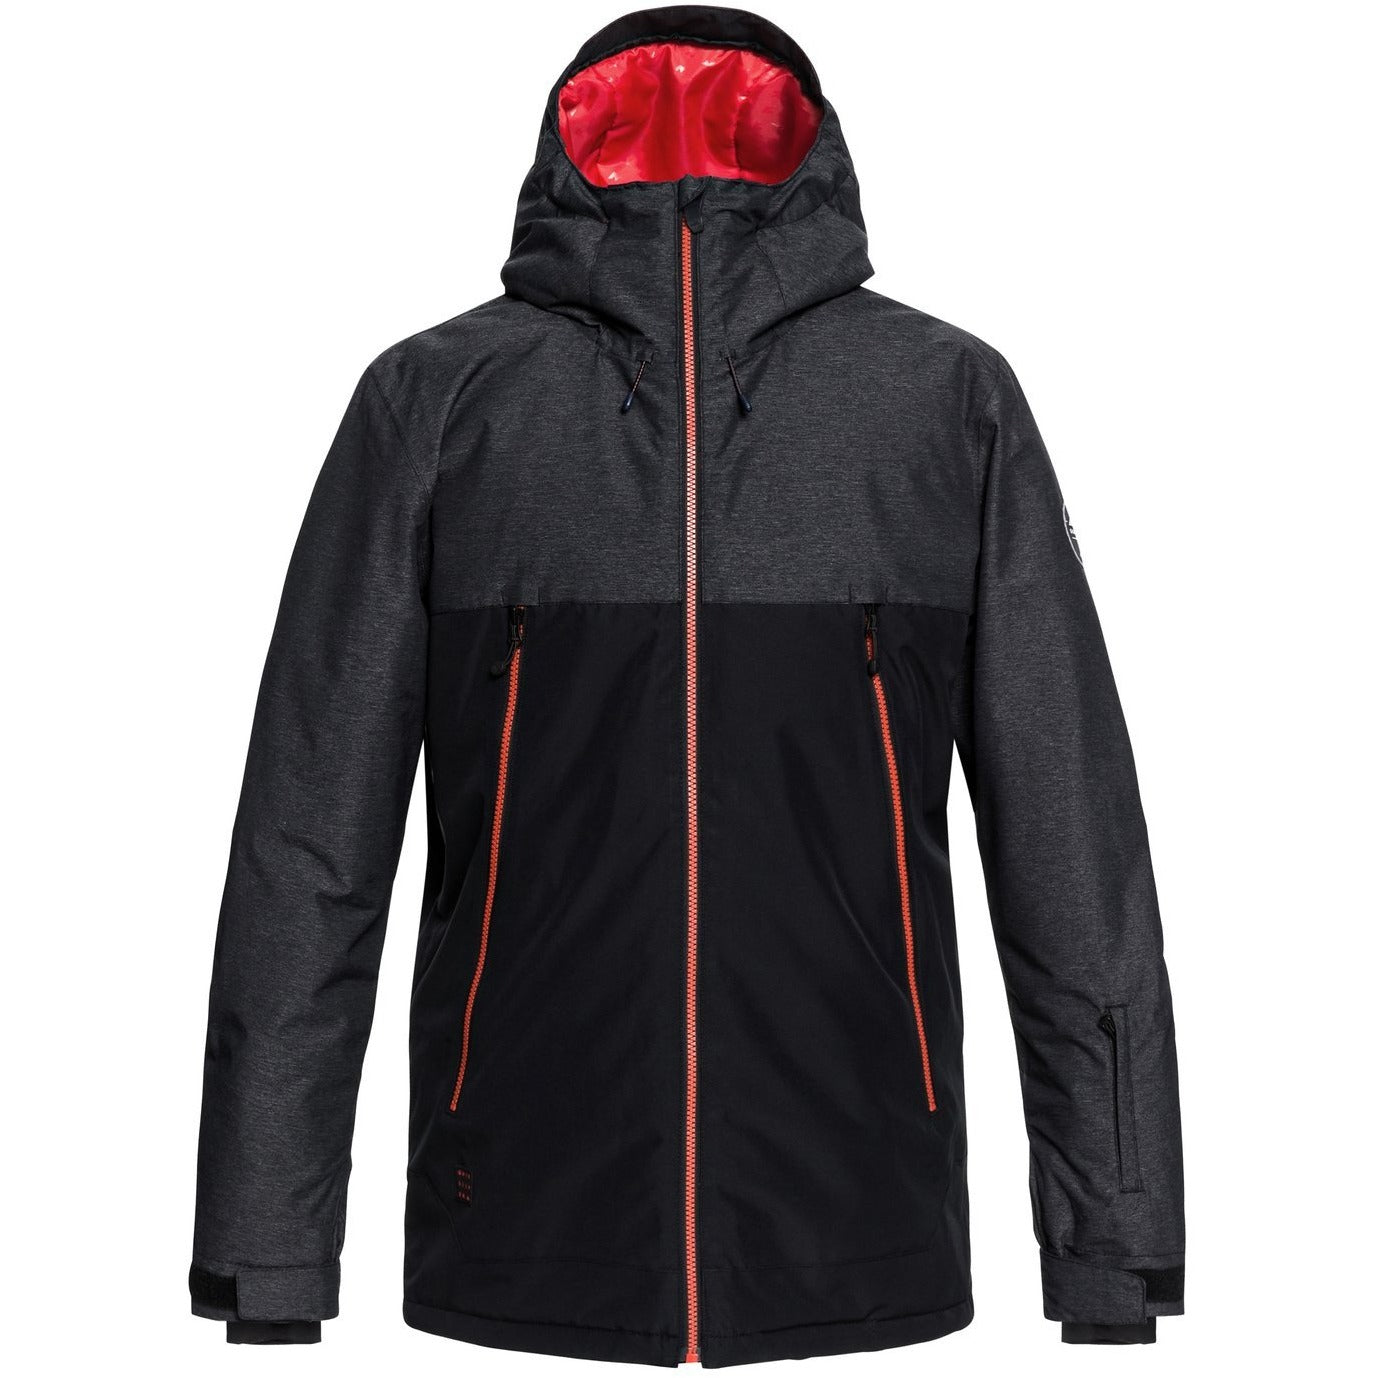 Quiksilver Sierra Snow Jacket - 88 Gear